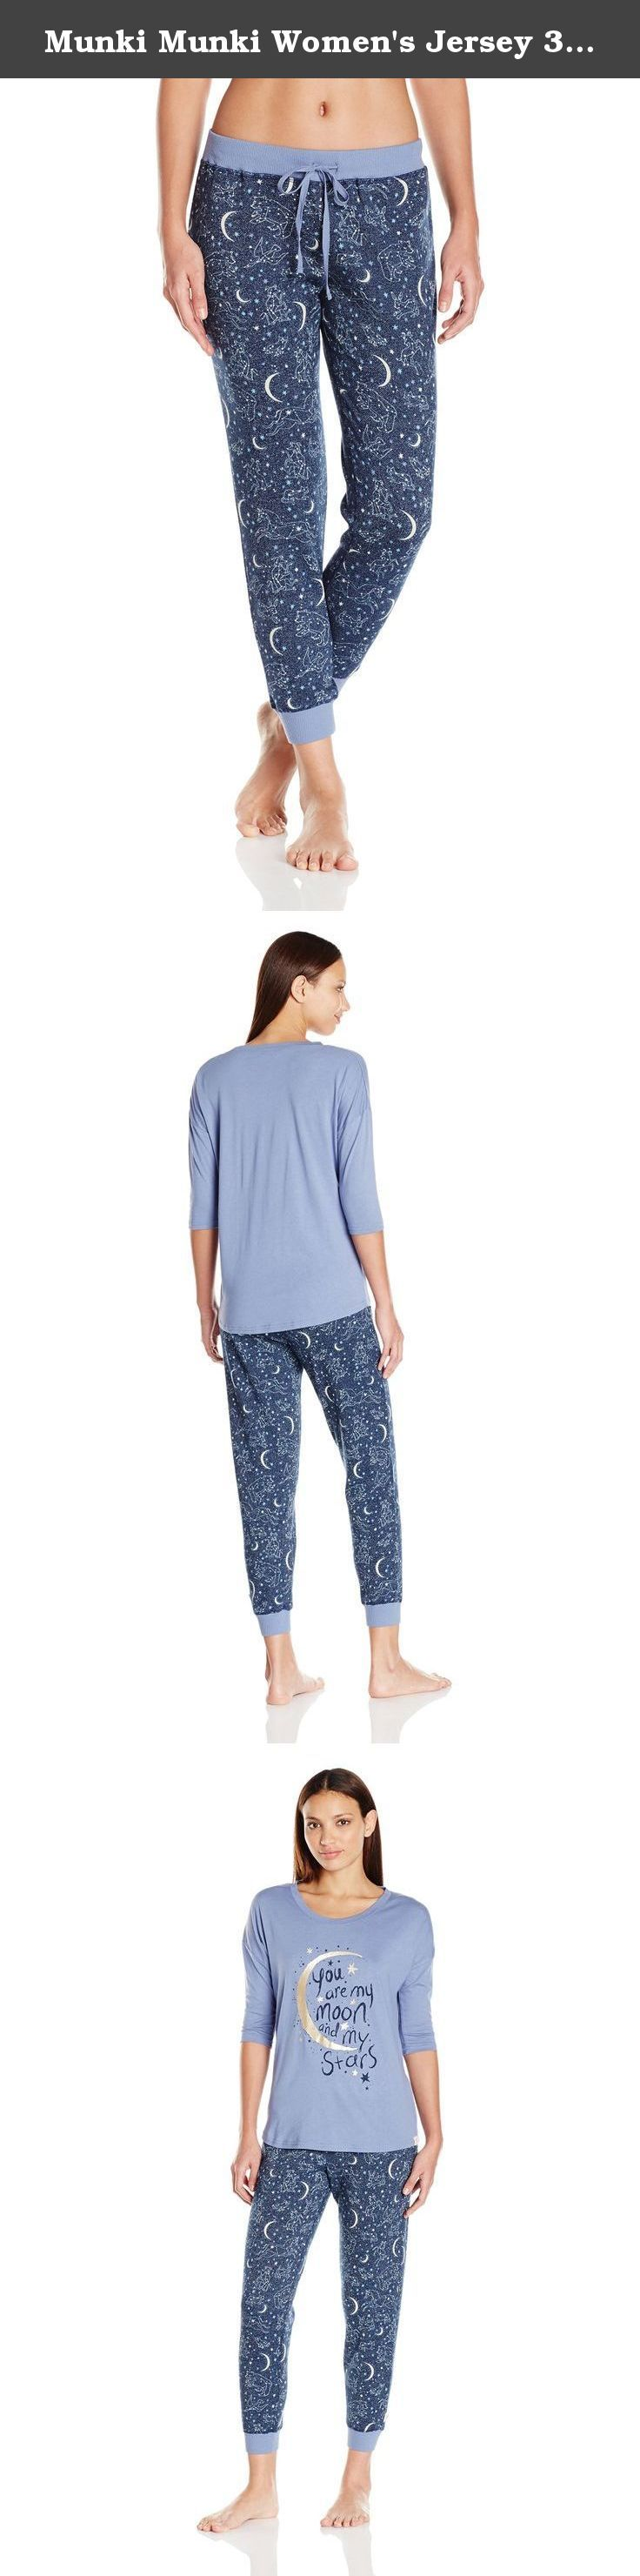 Munki Munki Women's Jersey 3/4 Sleeve Slouchy Tee and Sparkle Fleece Jogger Set, Navy Constellations, Large. Slouchy top with fun graphic print and super soft sparkle fleece plants.